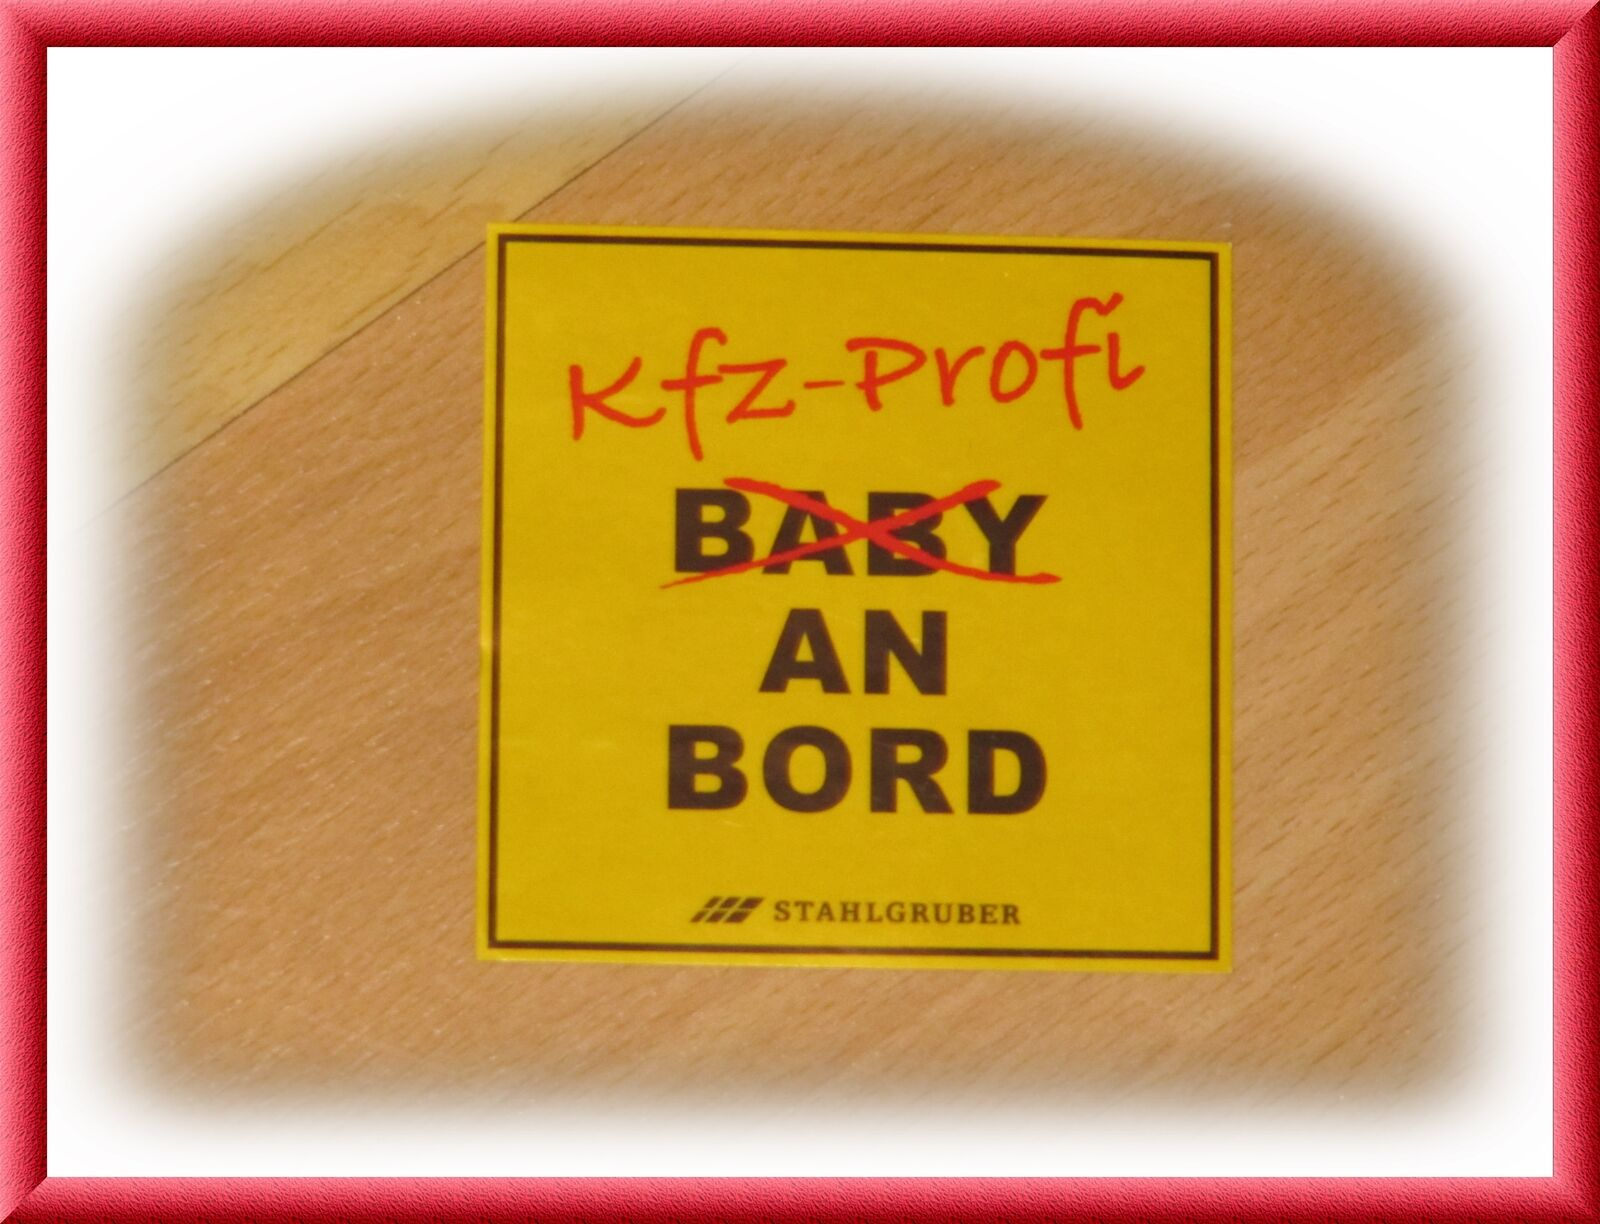 baby an bord aufkleber kfz profi stahlgruber 1 st ck sticker neu und unbenutzt picclick de. Black Bedroom Furniture Sets. Home Design Ideas